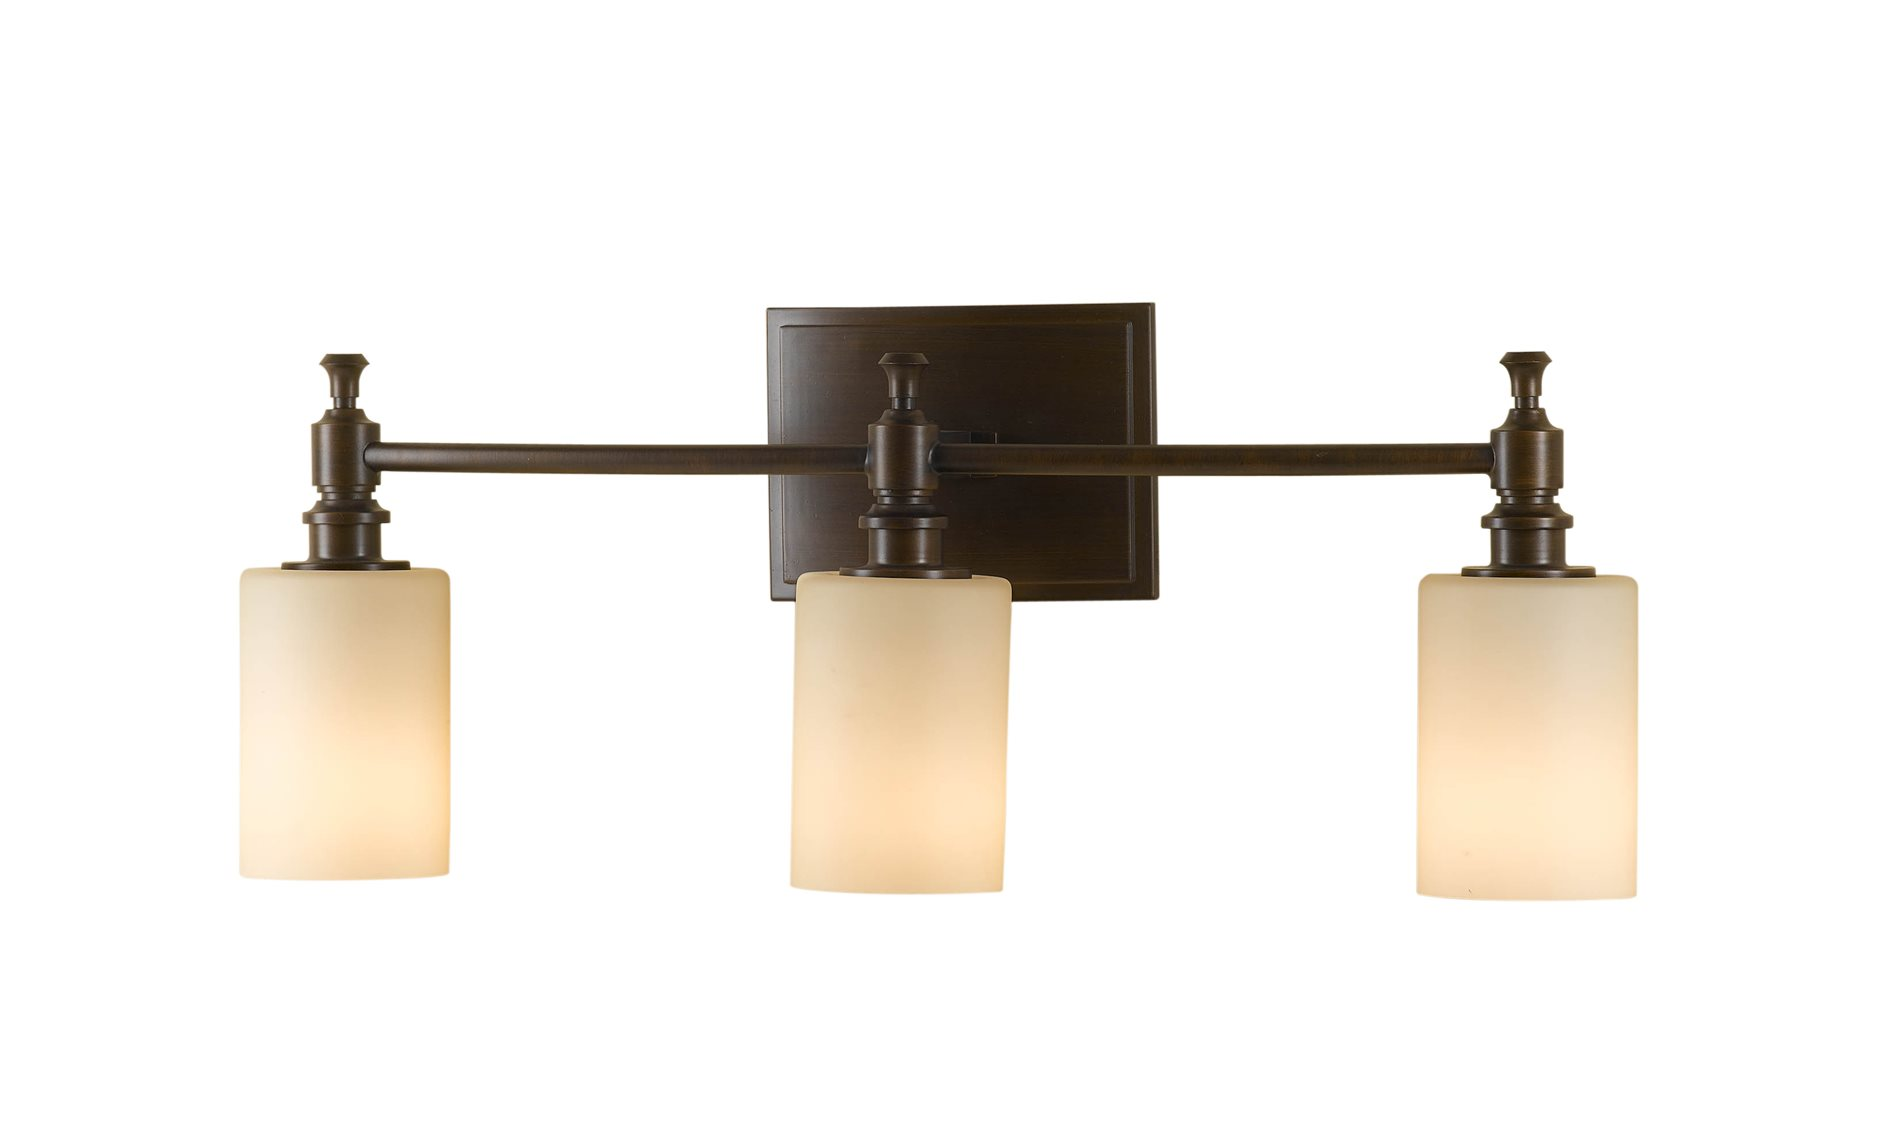 Murray Feiss Vs16103 Htbz Sullivan Transitional Bathroom Vanity Light Mrf Vs 16103 Htbz